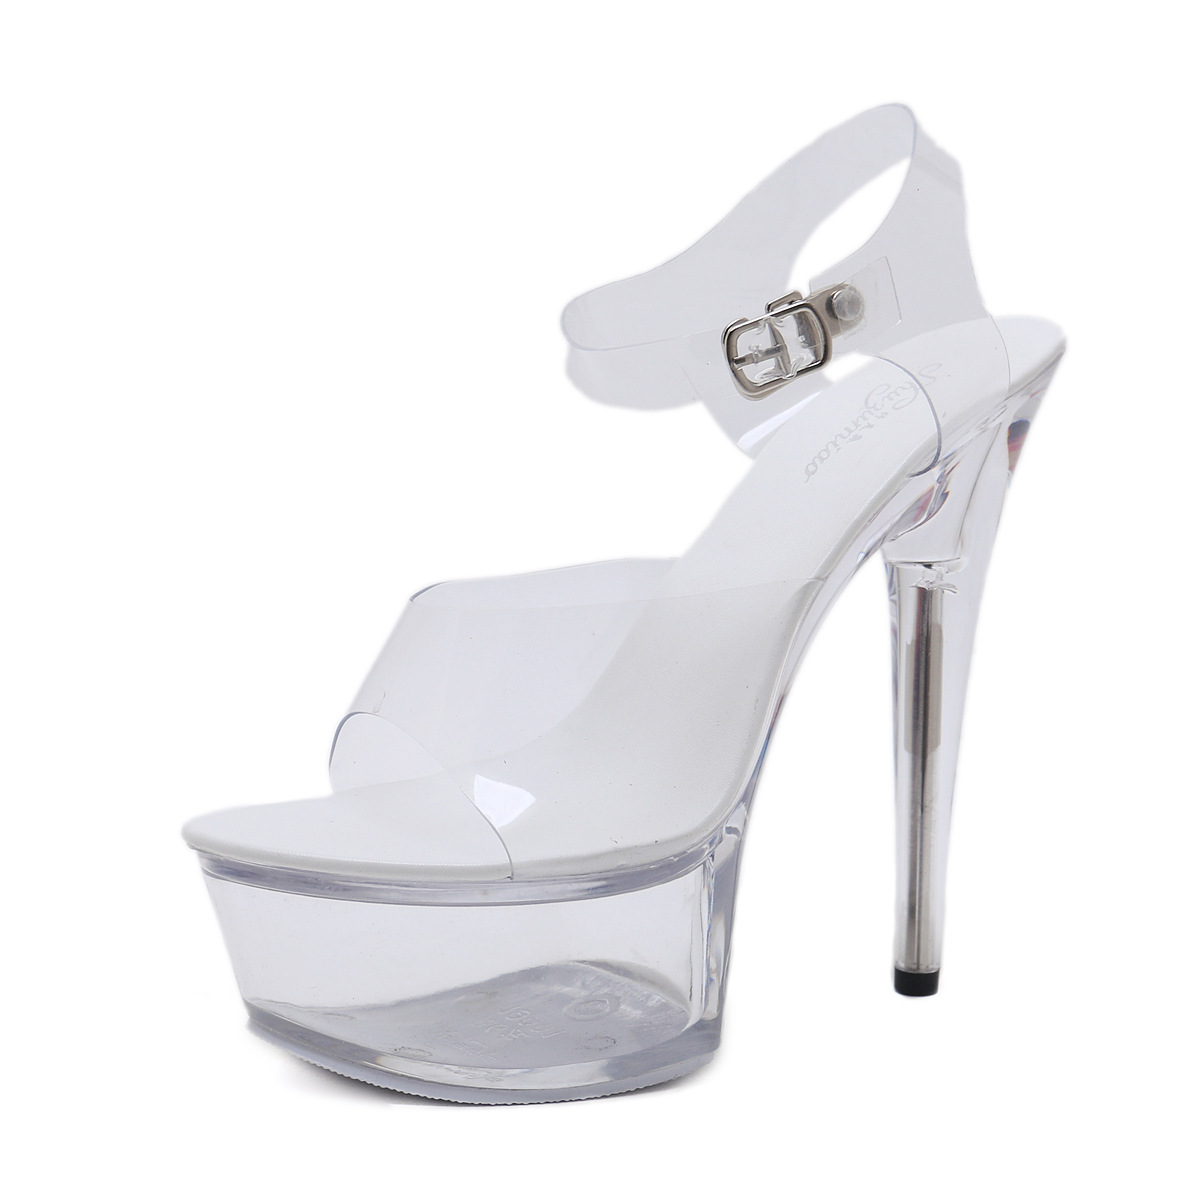 Shoes Woman High-Heels Transparent Sandals Platform Strappy Party Nightclub Clear PVC